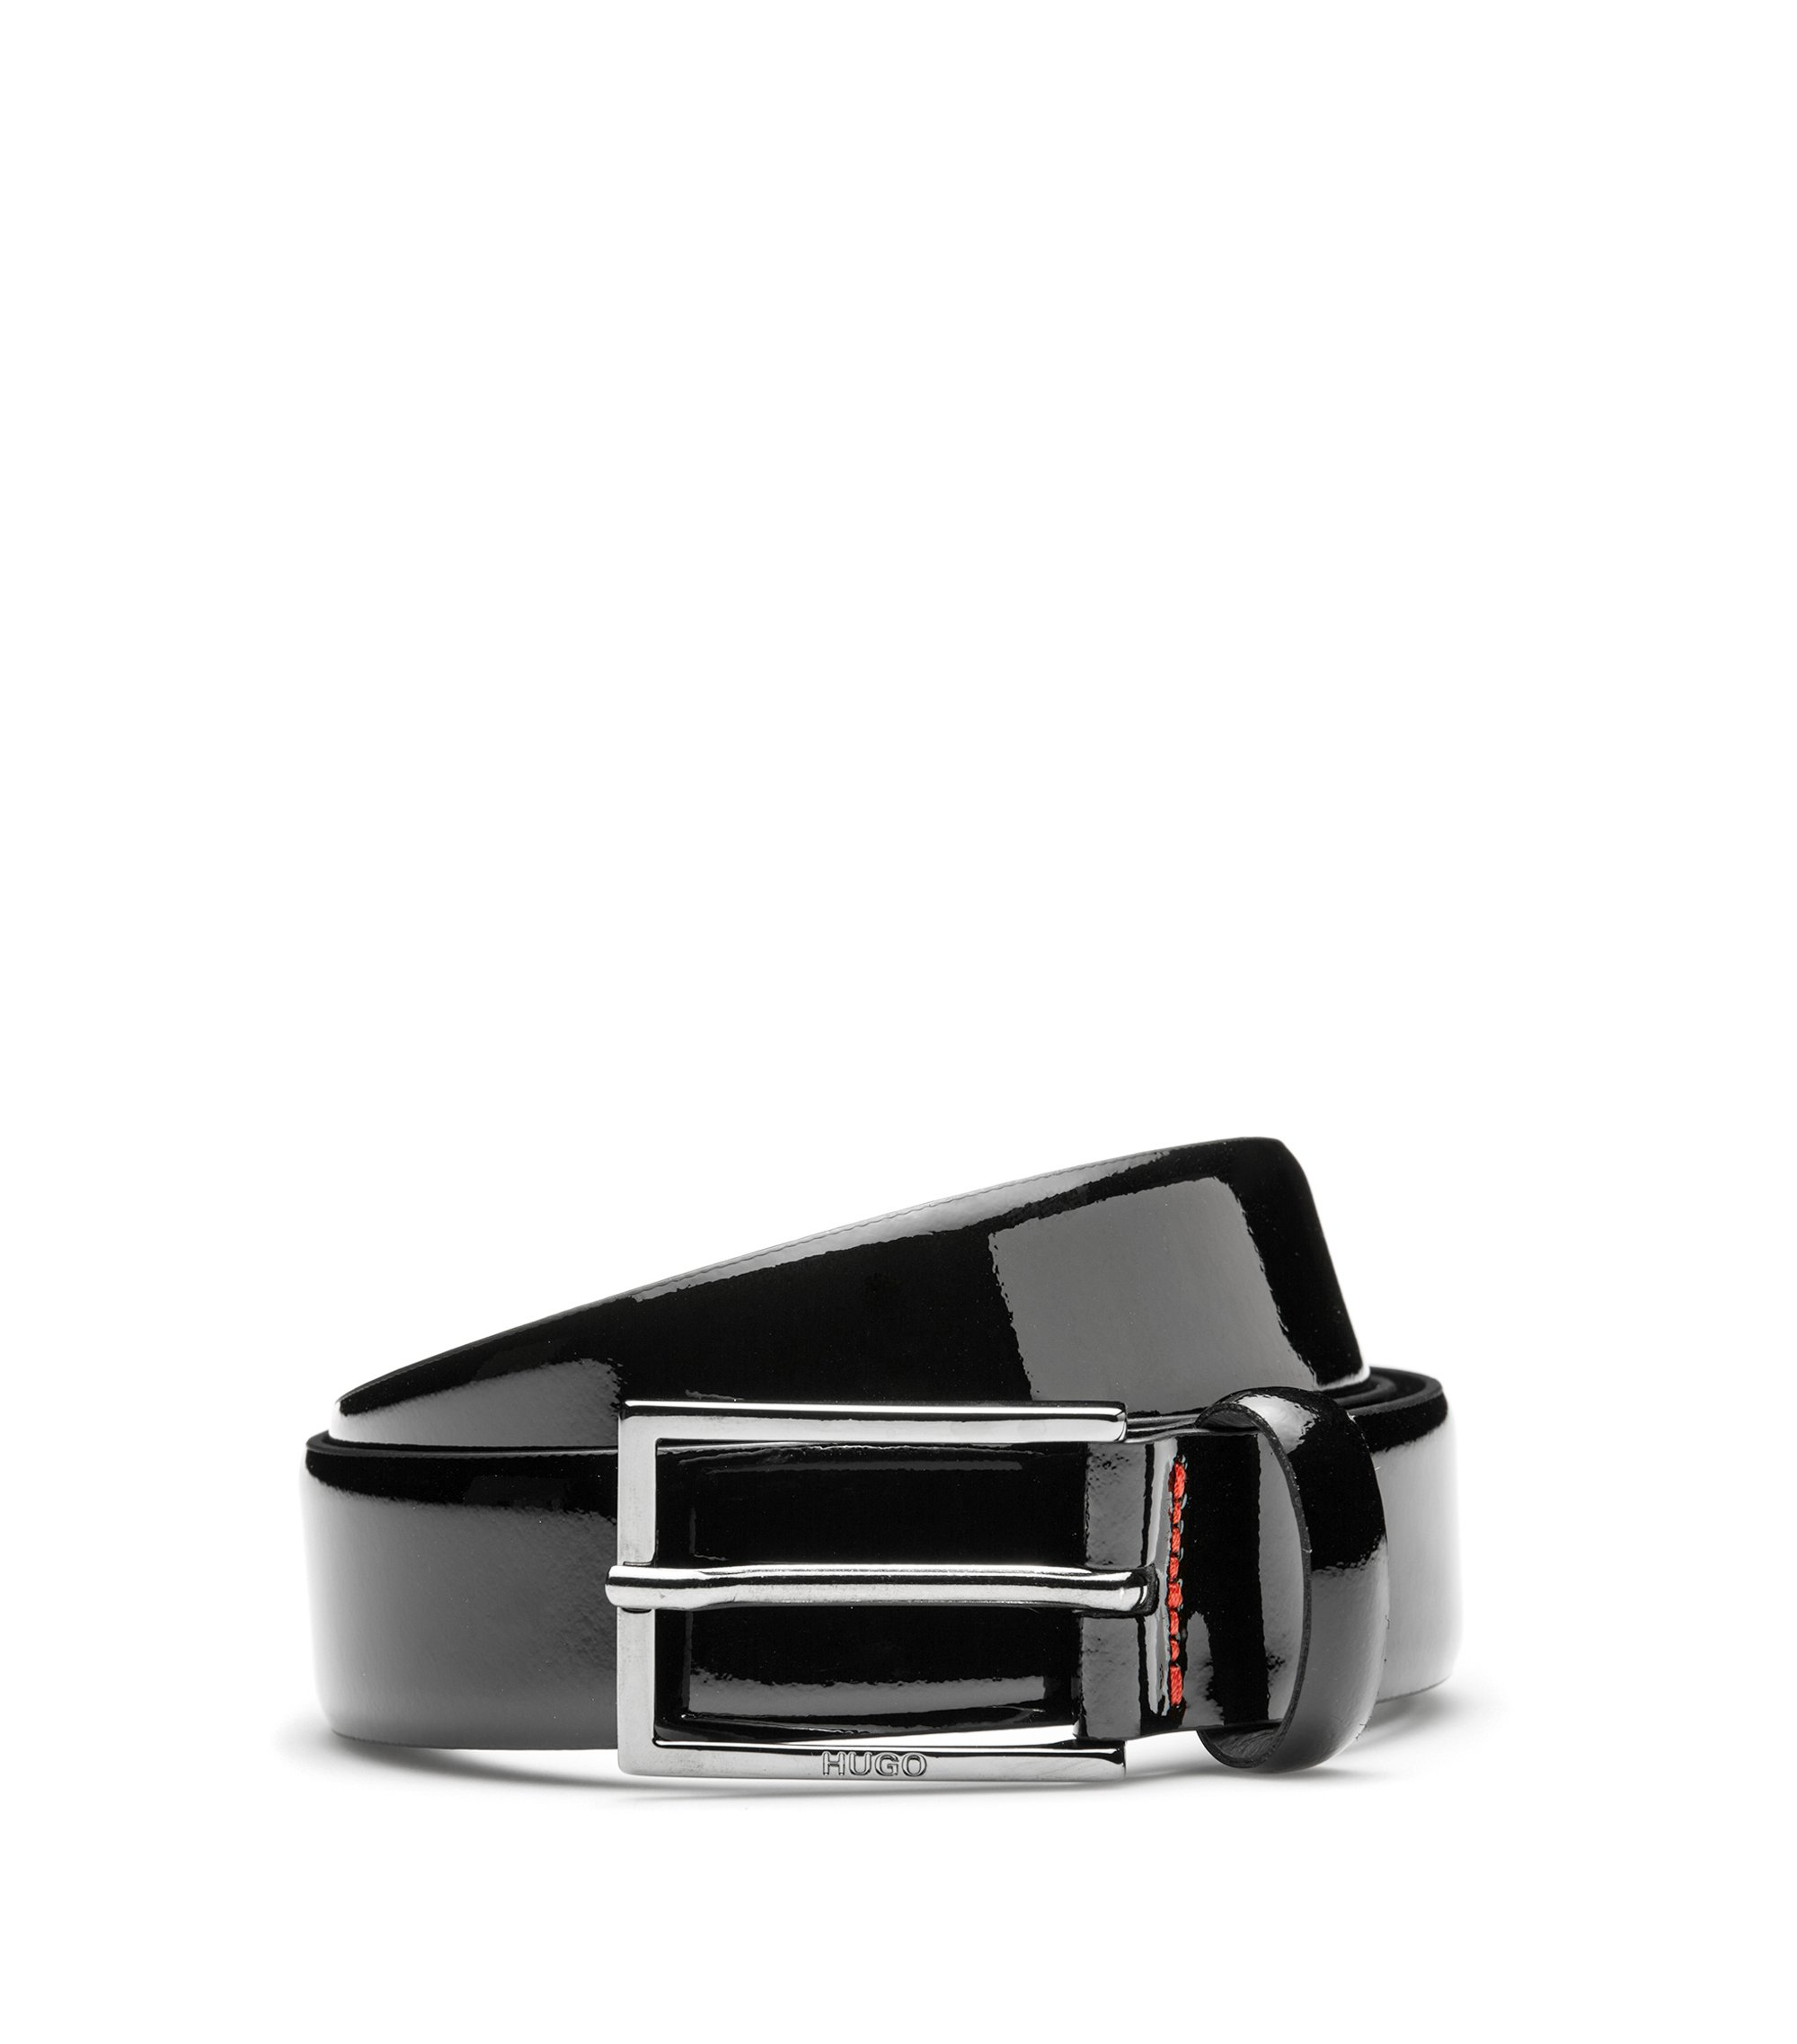 Patent Leather Belt | Gavino, Black